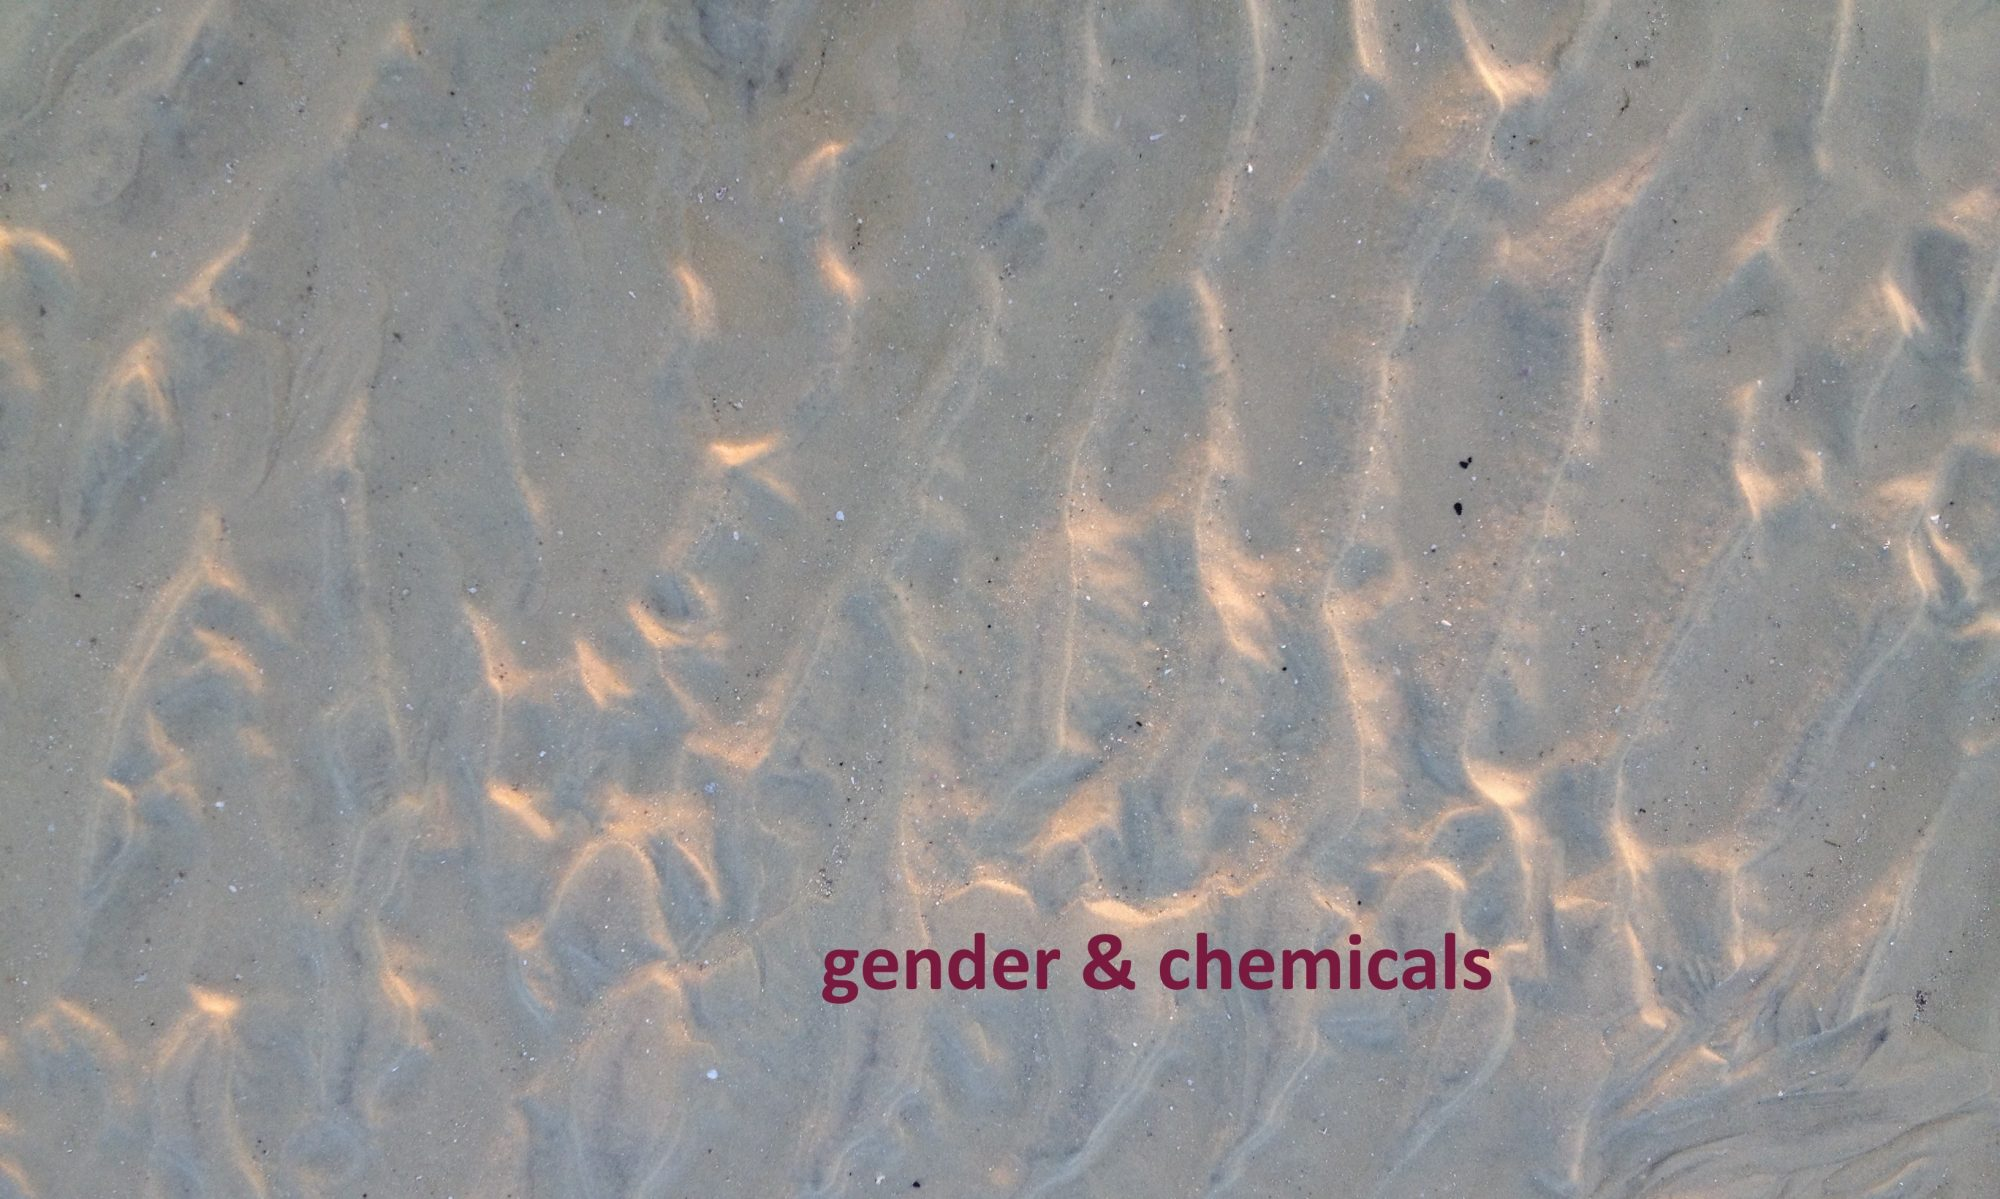 Gender & Chemicals